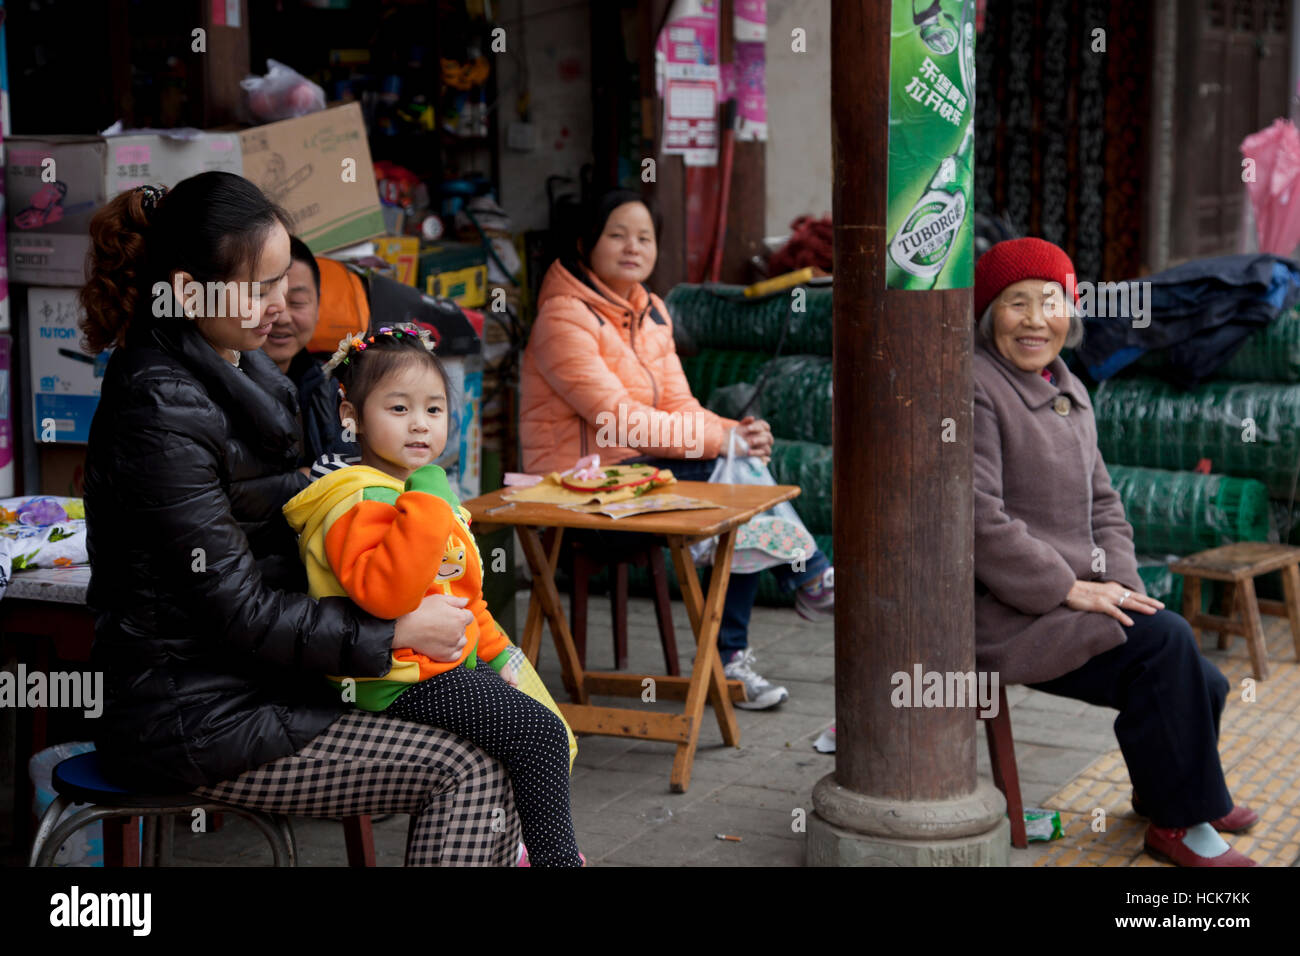 Members of the extended family sitting outside their convenience or general shop in a small old town in west China. - Stock Image